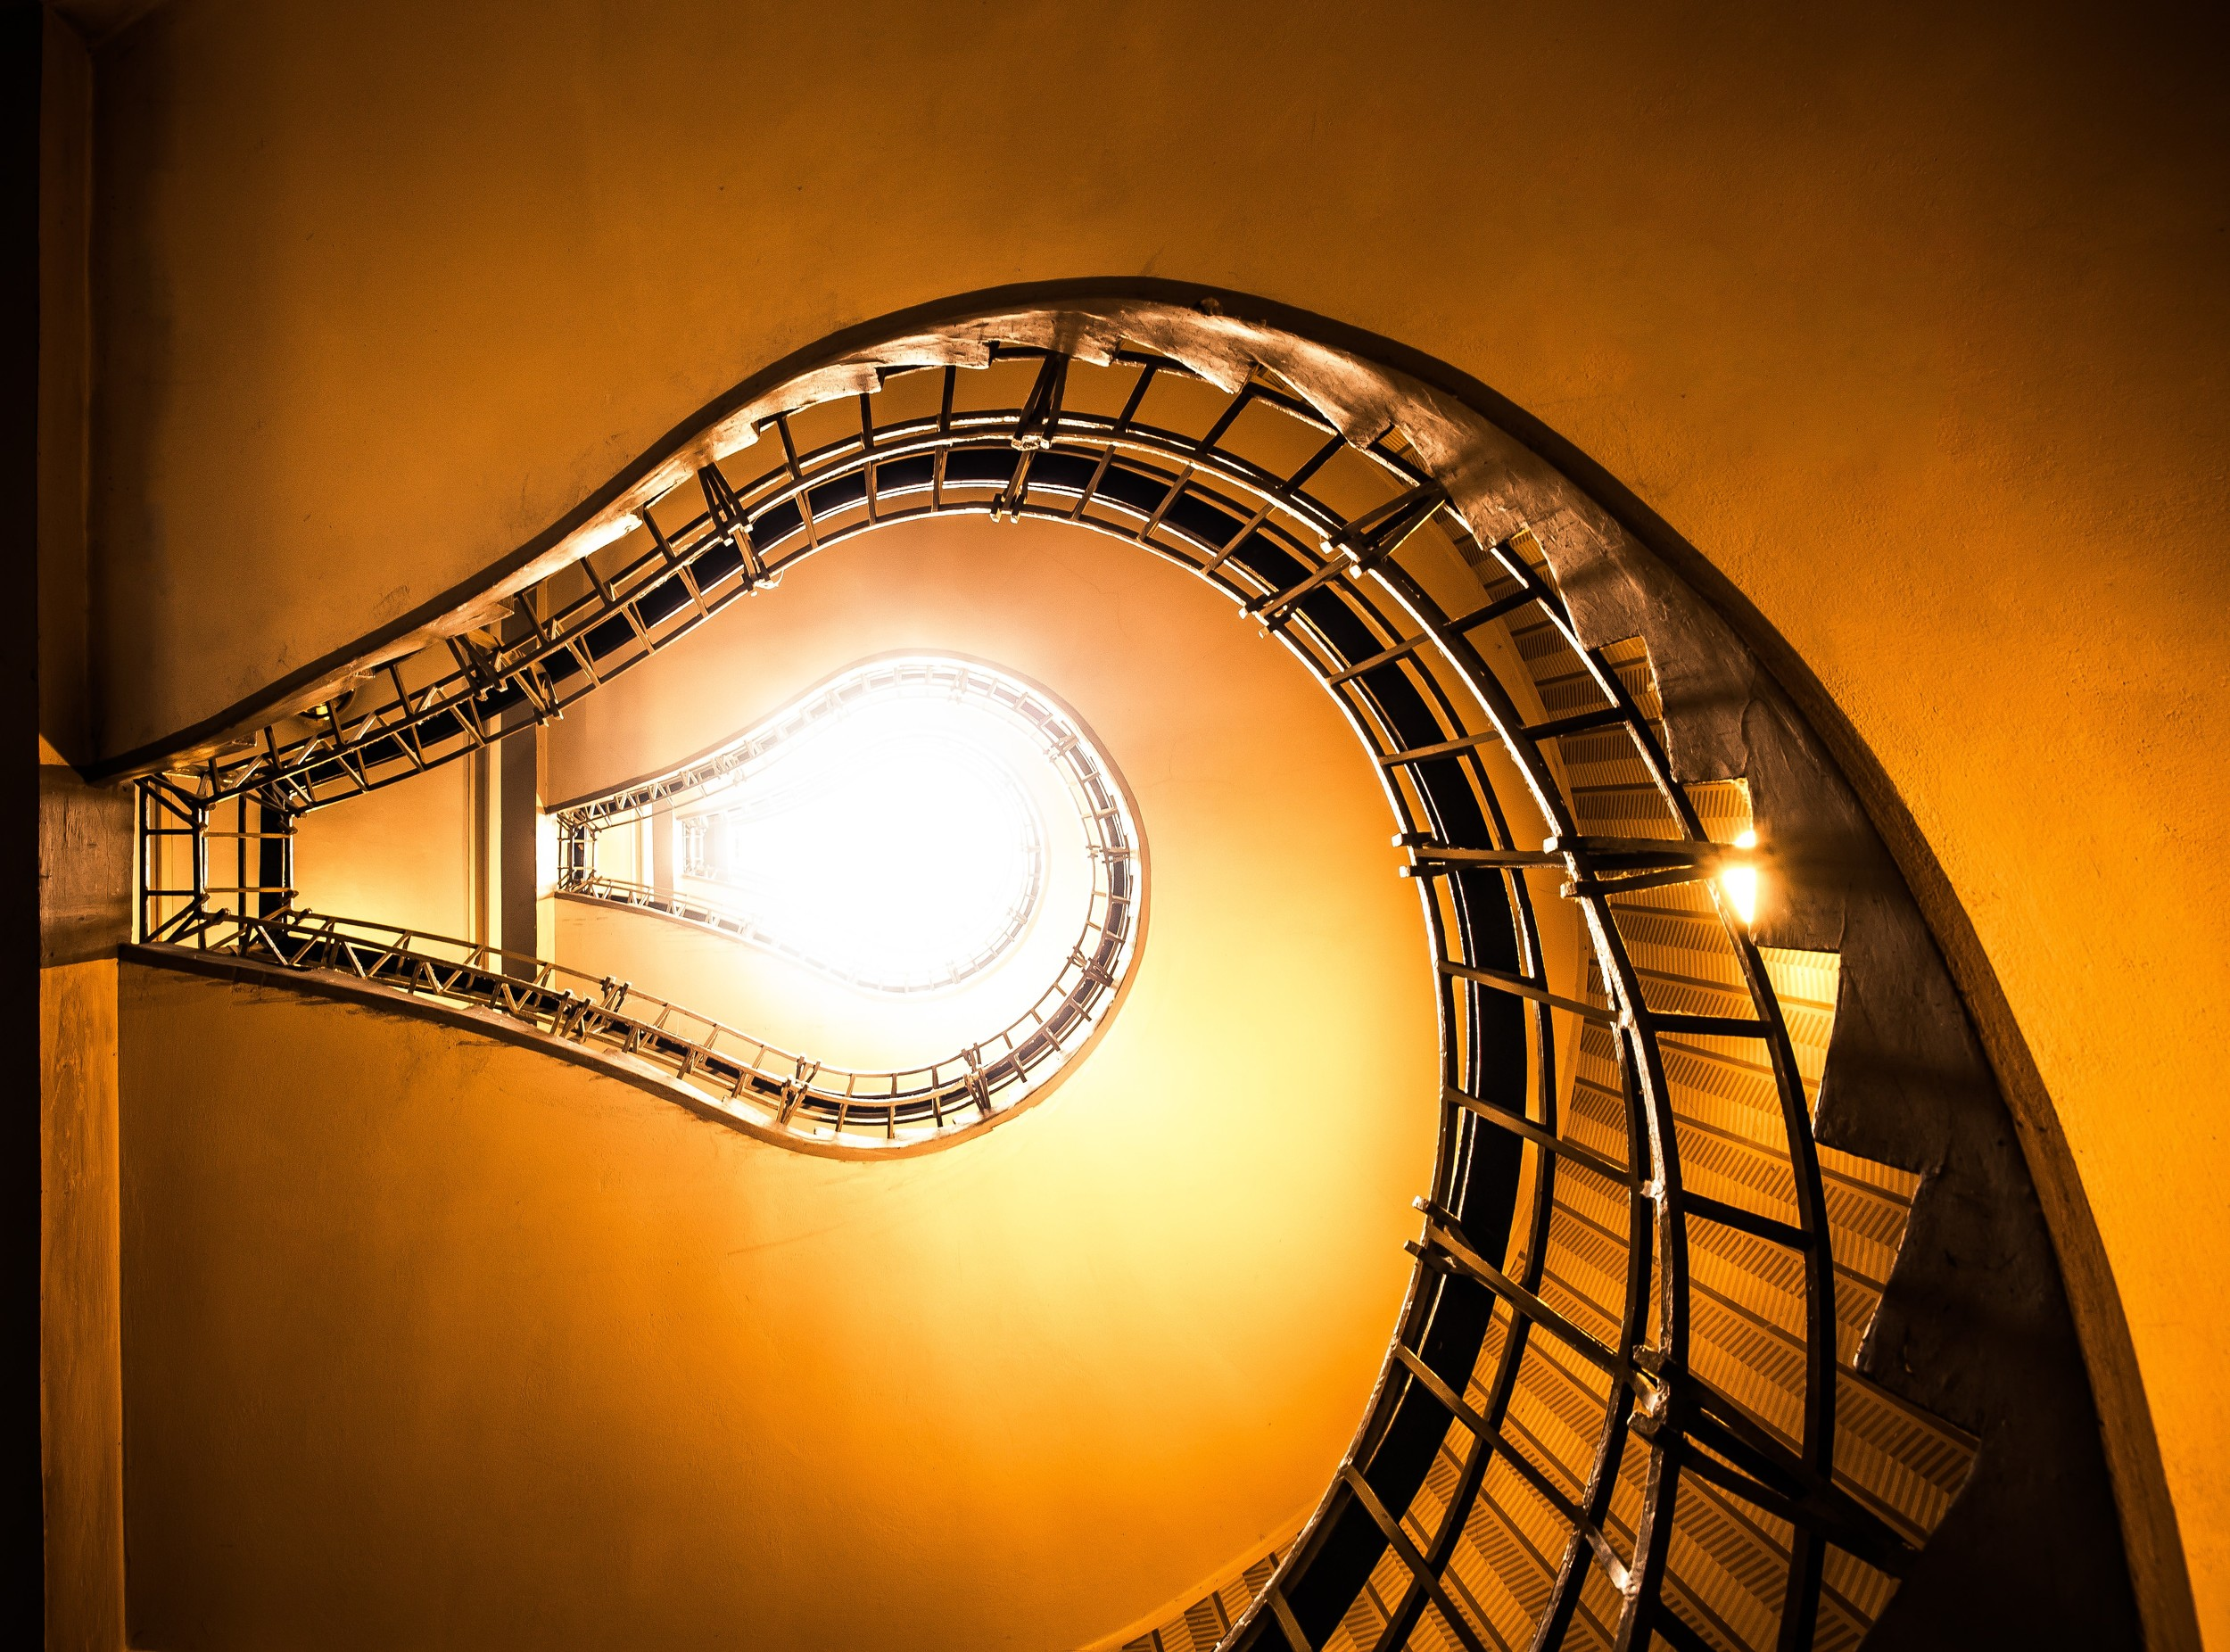 Stairs bulb